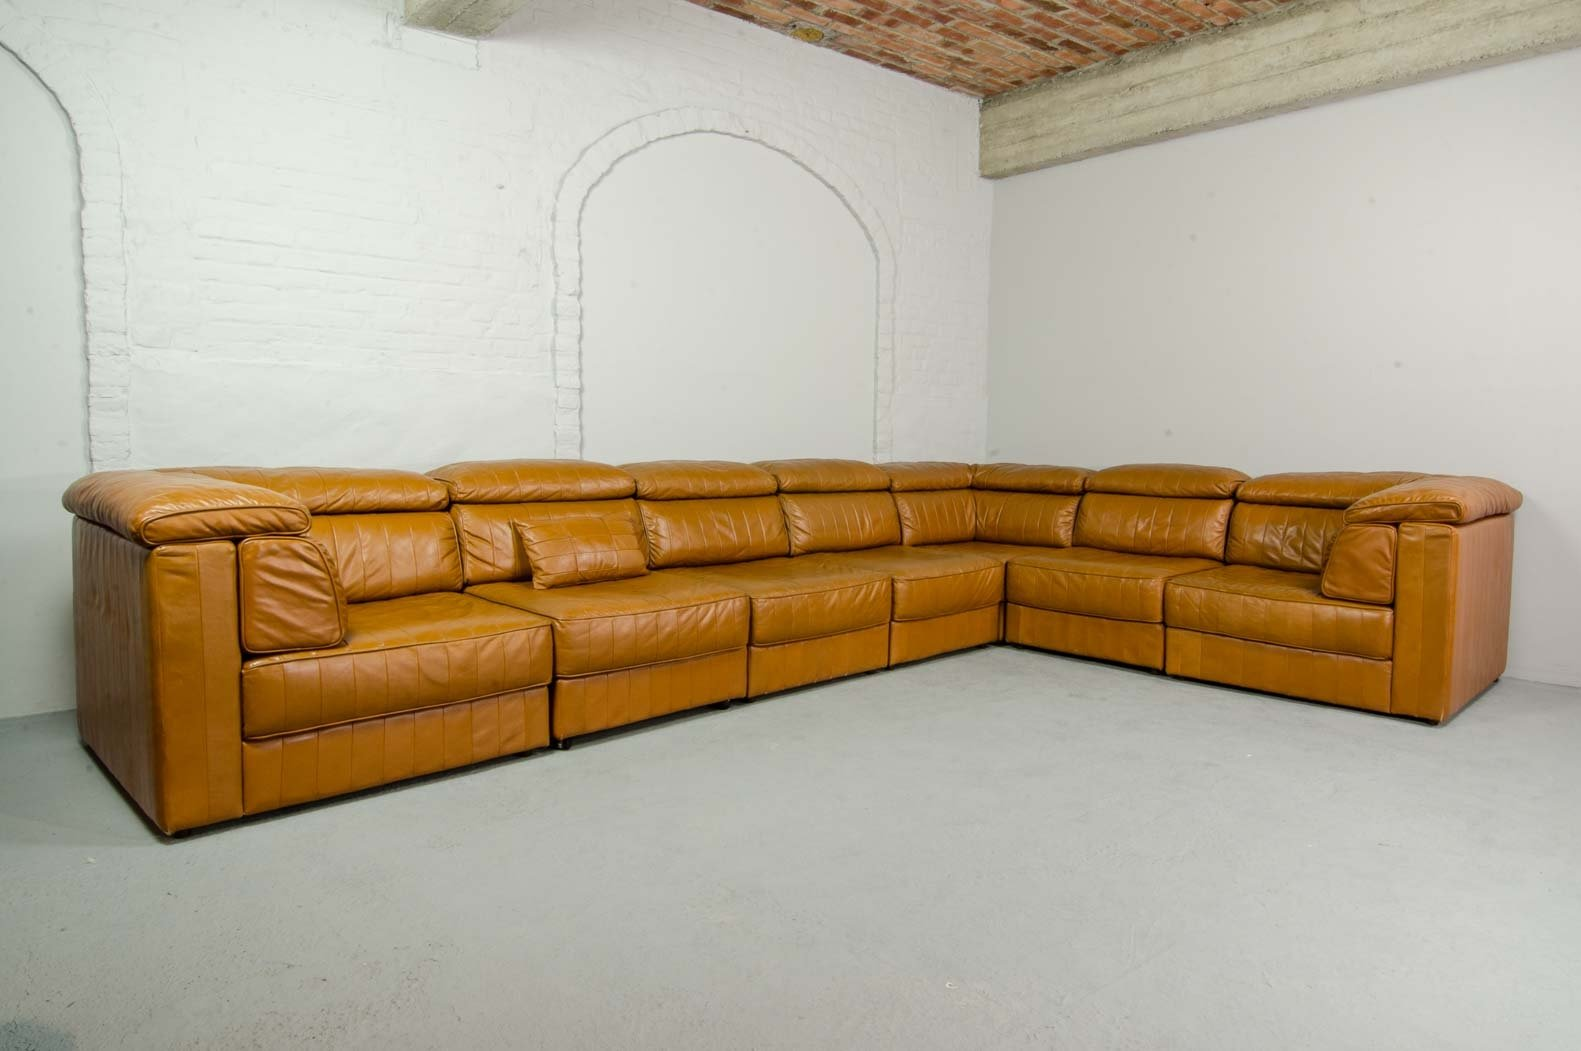 7 Elements Modular Patchwork Sofa By Laauser In Cognac Leather, 1970s